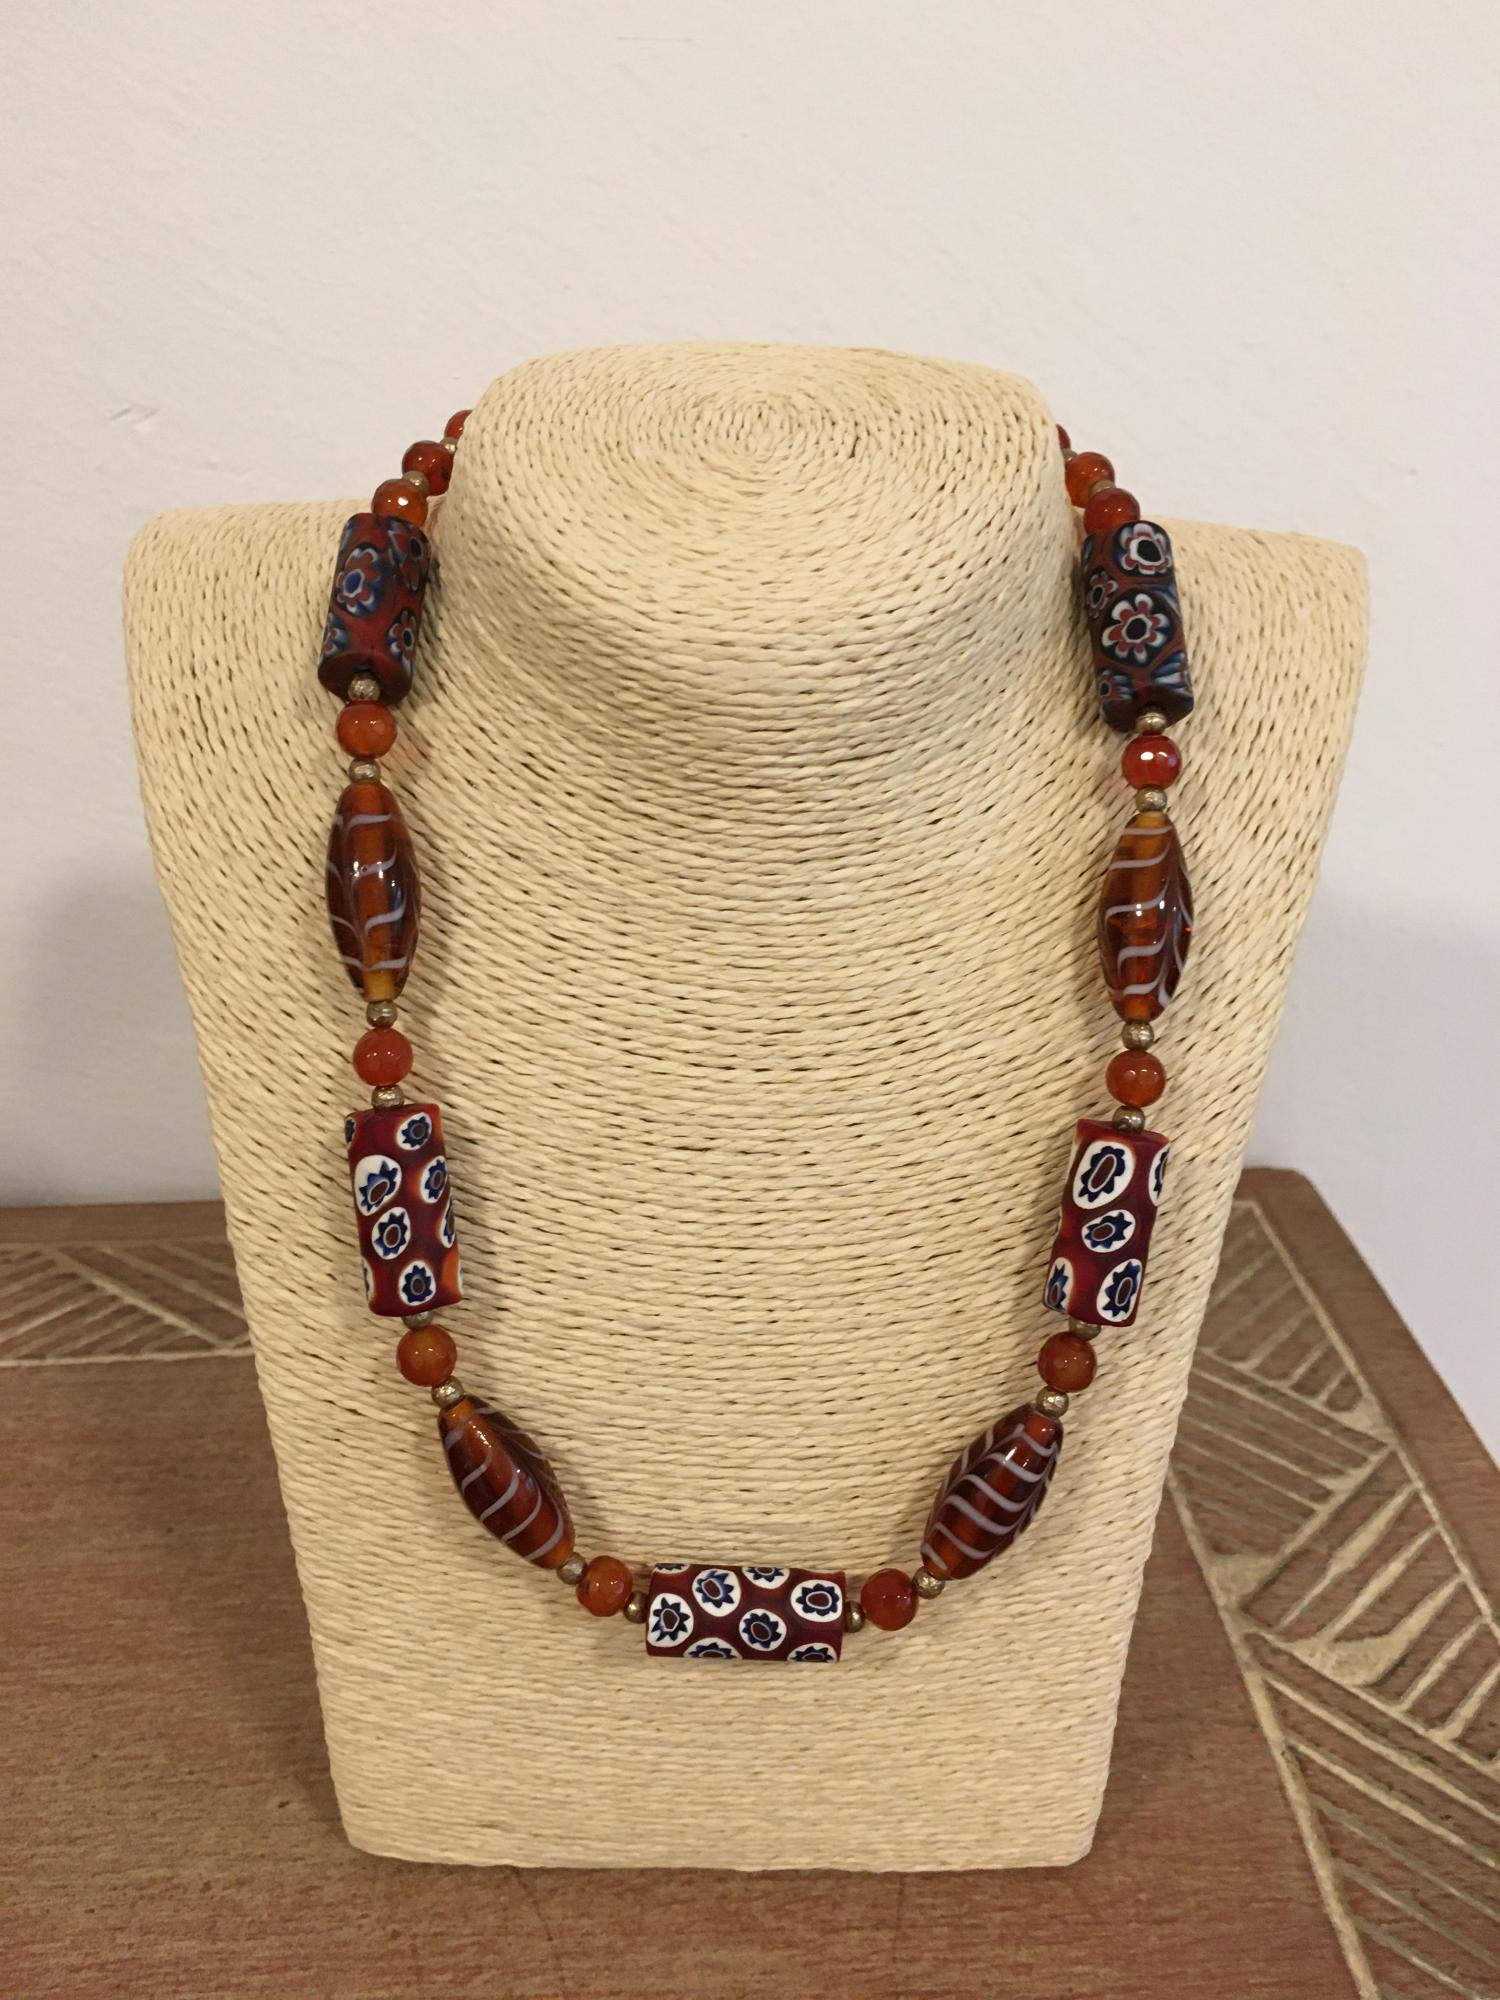 Tradebeads-Featherbeads-African Beads Design